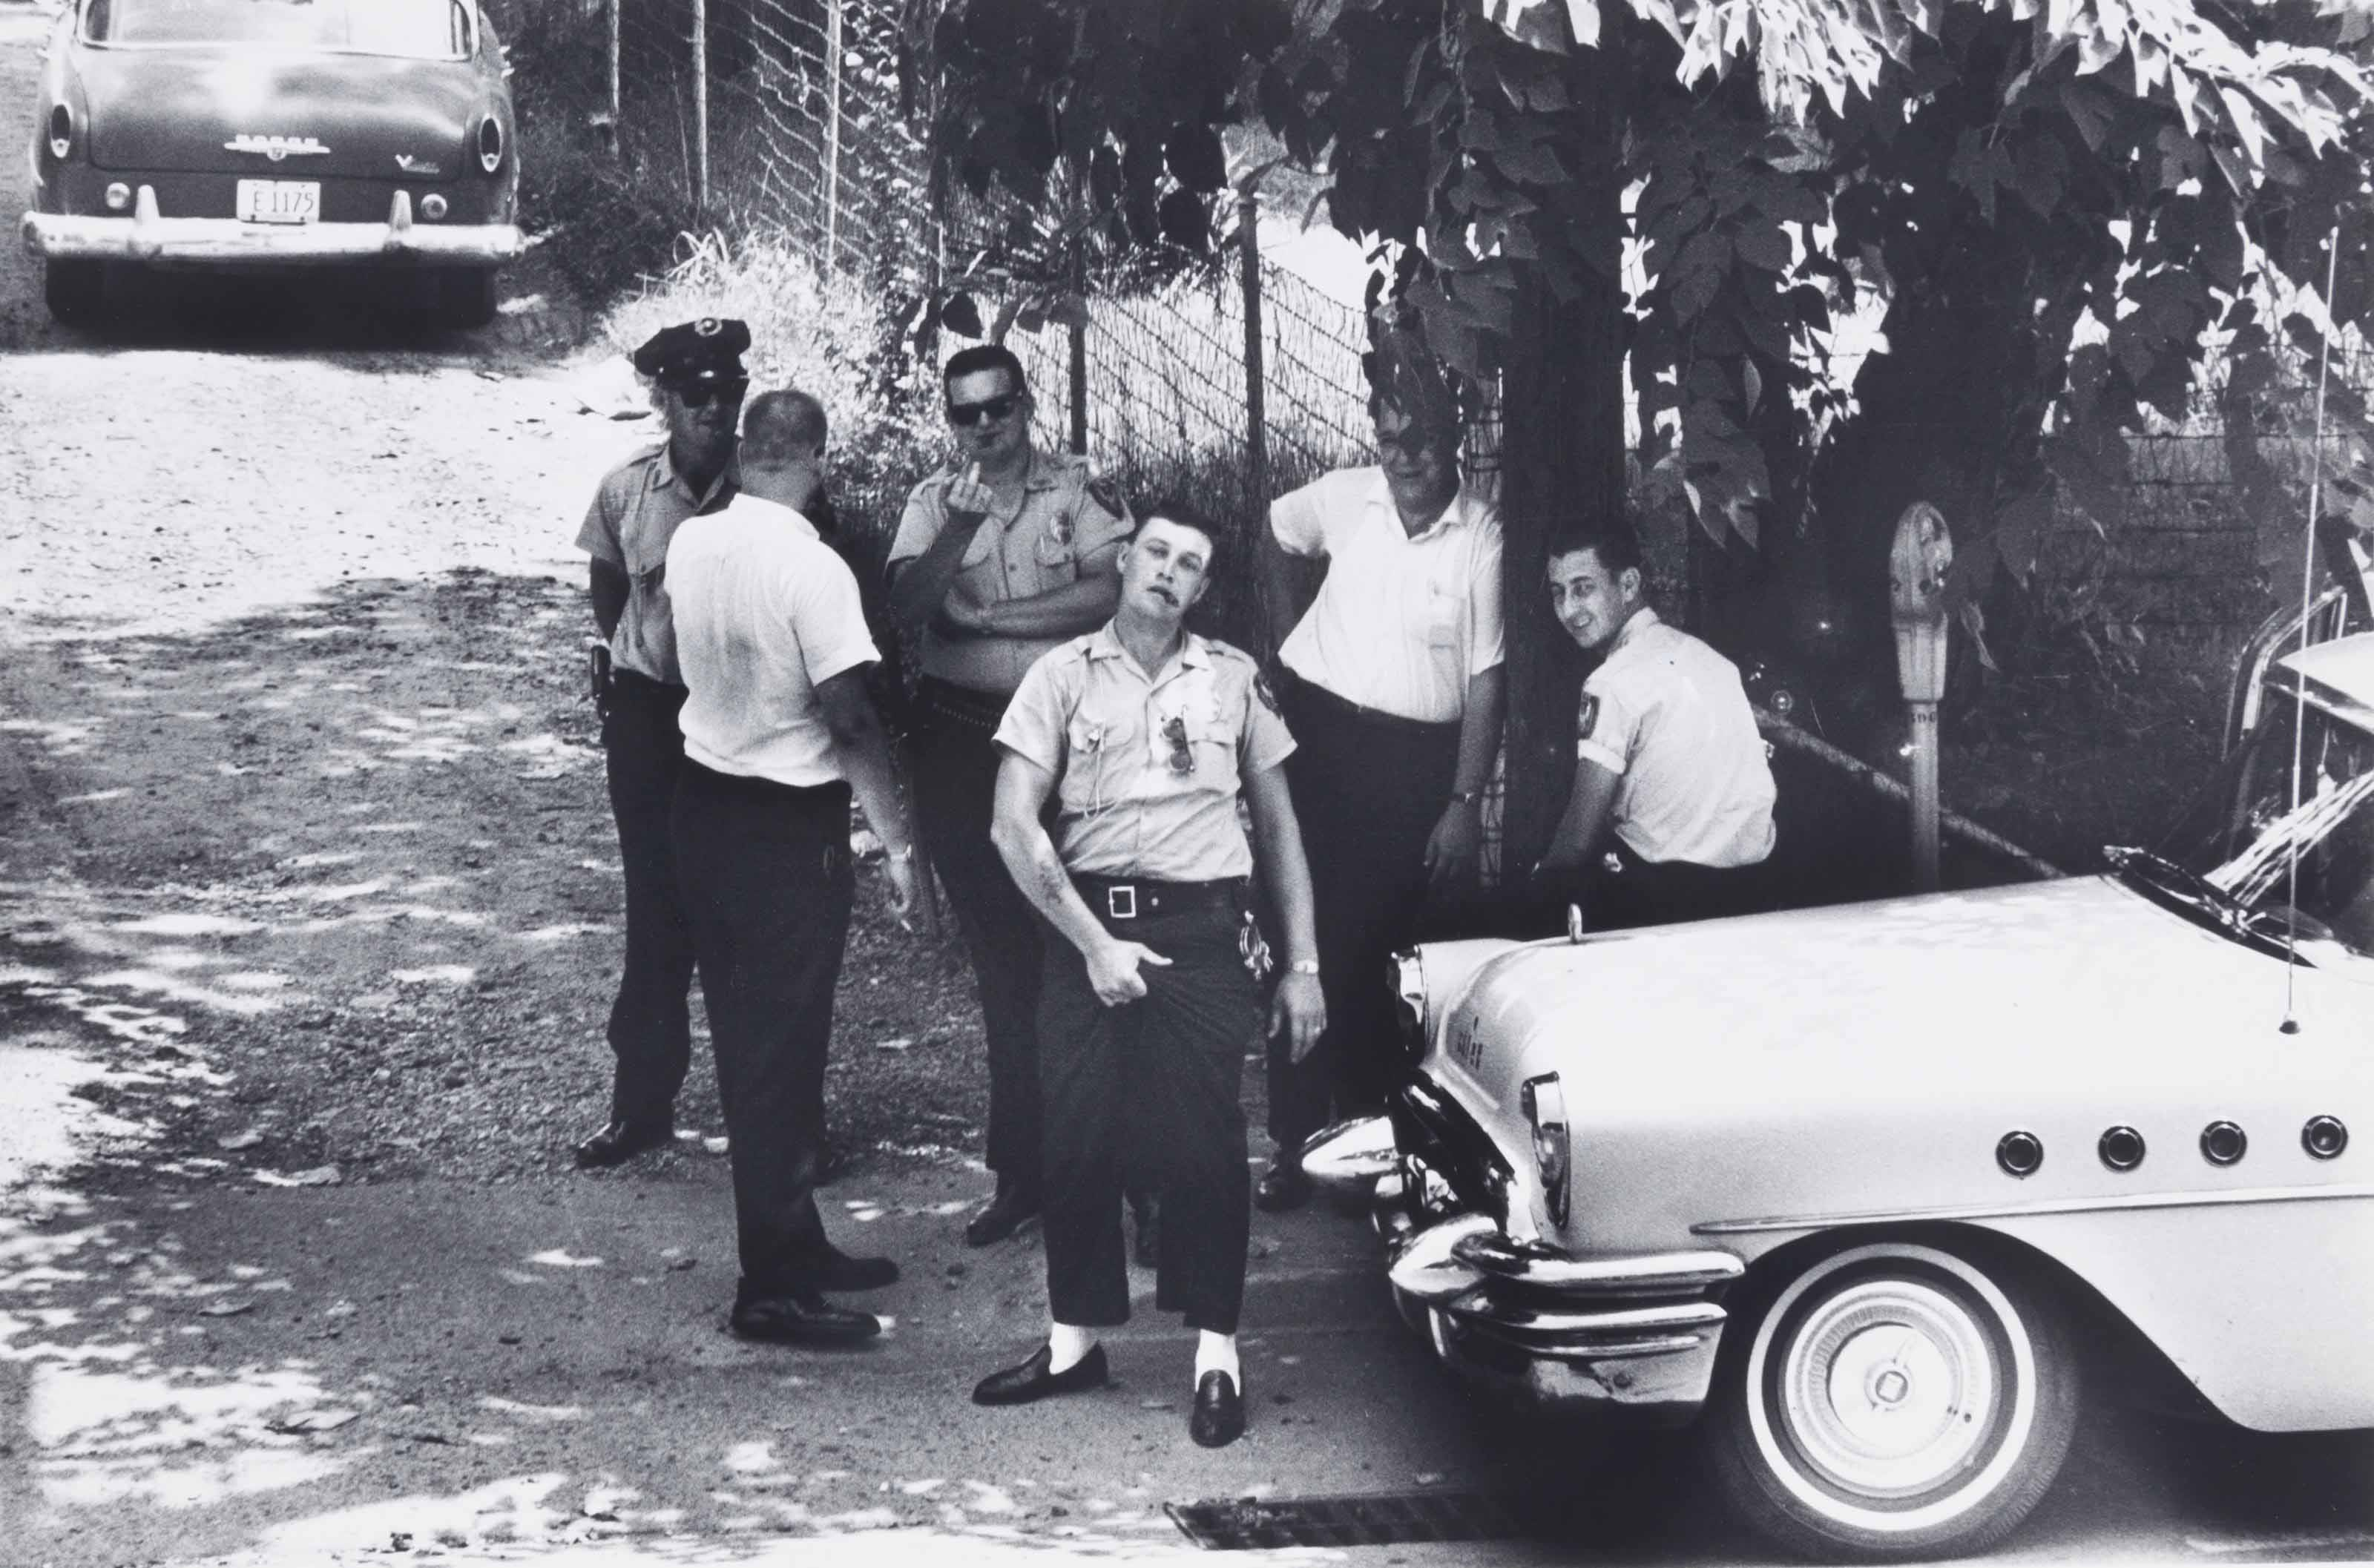 Police pose for a photograph as ministers from the National Council of Churches march to a local church, Clarksdale, Mississippi, 1963